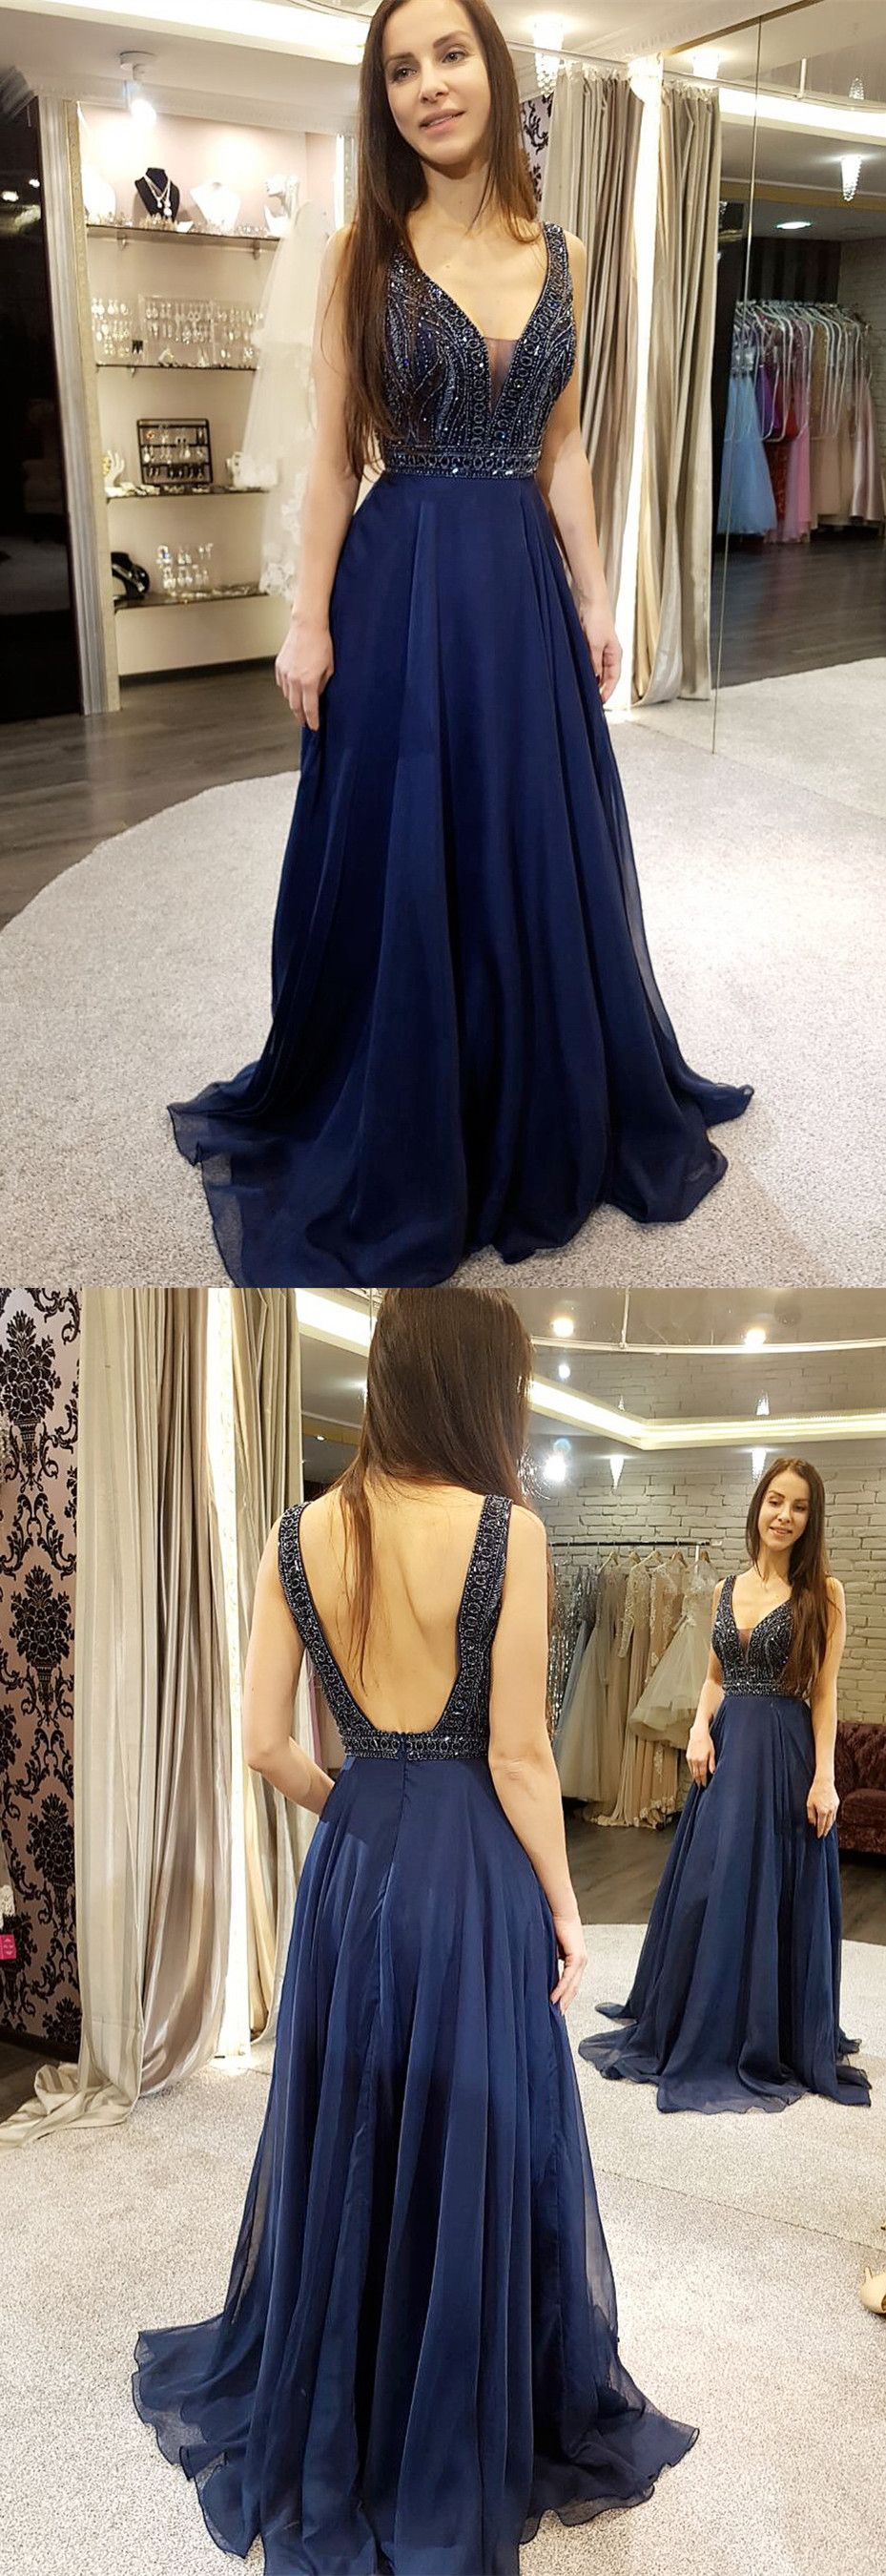 Gorgeous prom dress navy blue chiffon long prom dress v neck